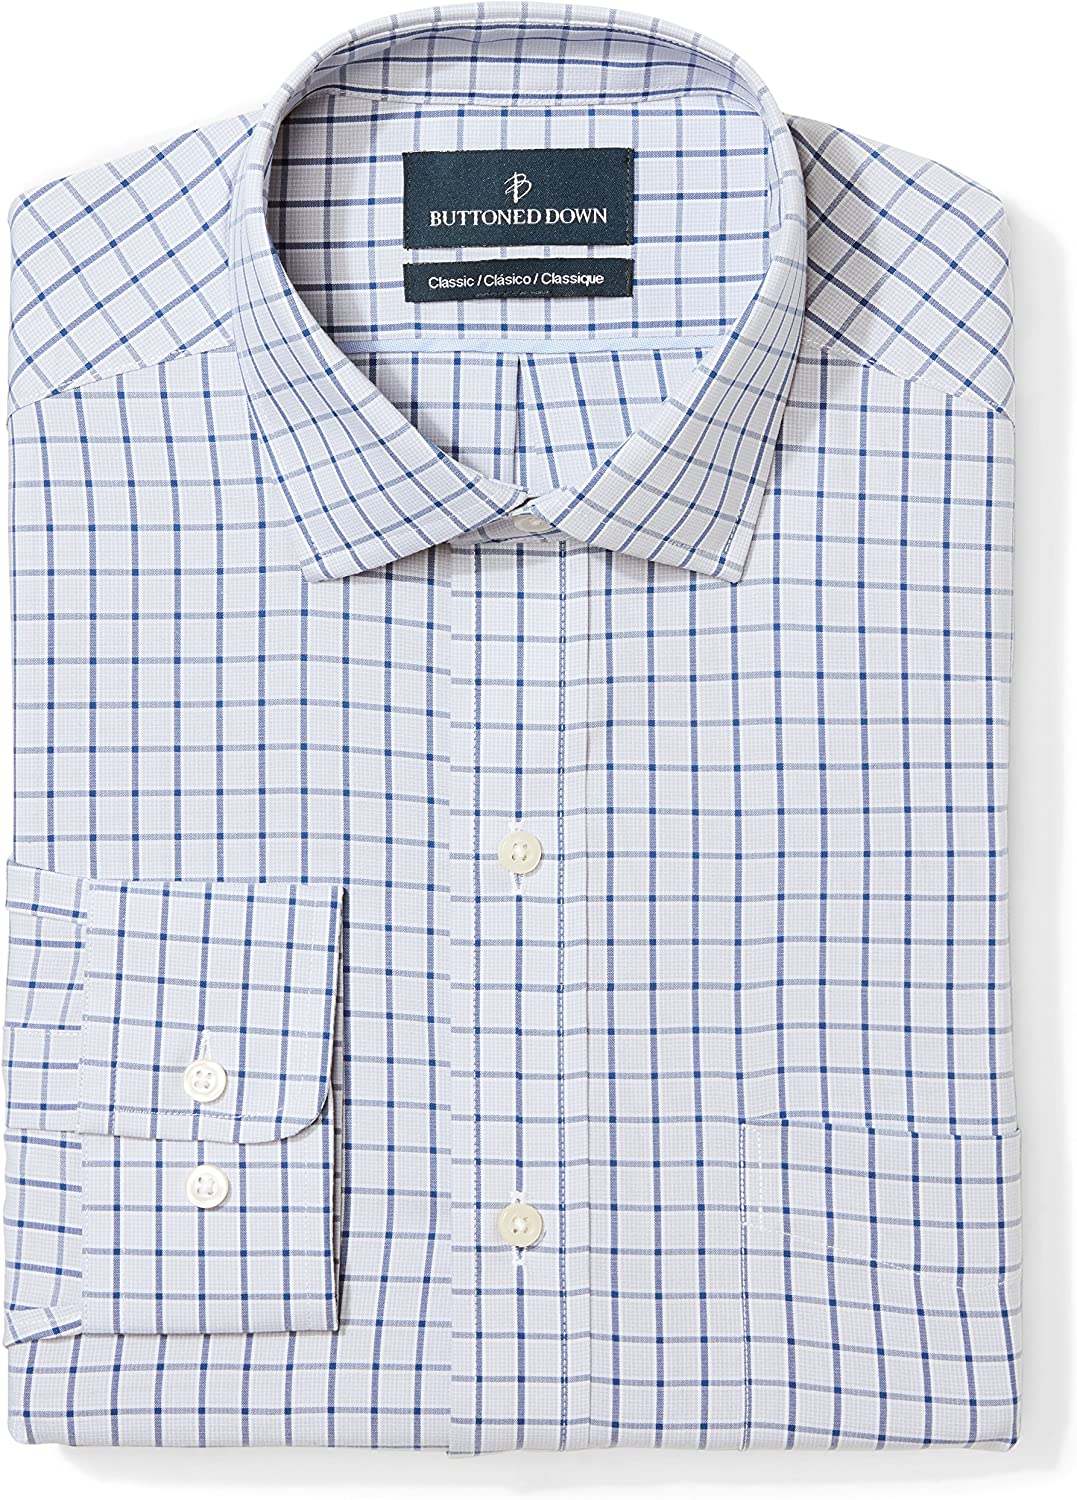 Buttoned Our shop OFFers the best service Down Men's Classic Fit Collar Shir Dress Pattern Max 82% OFF Spread